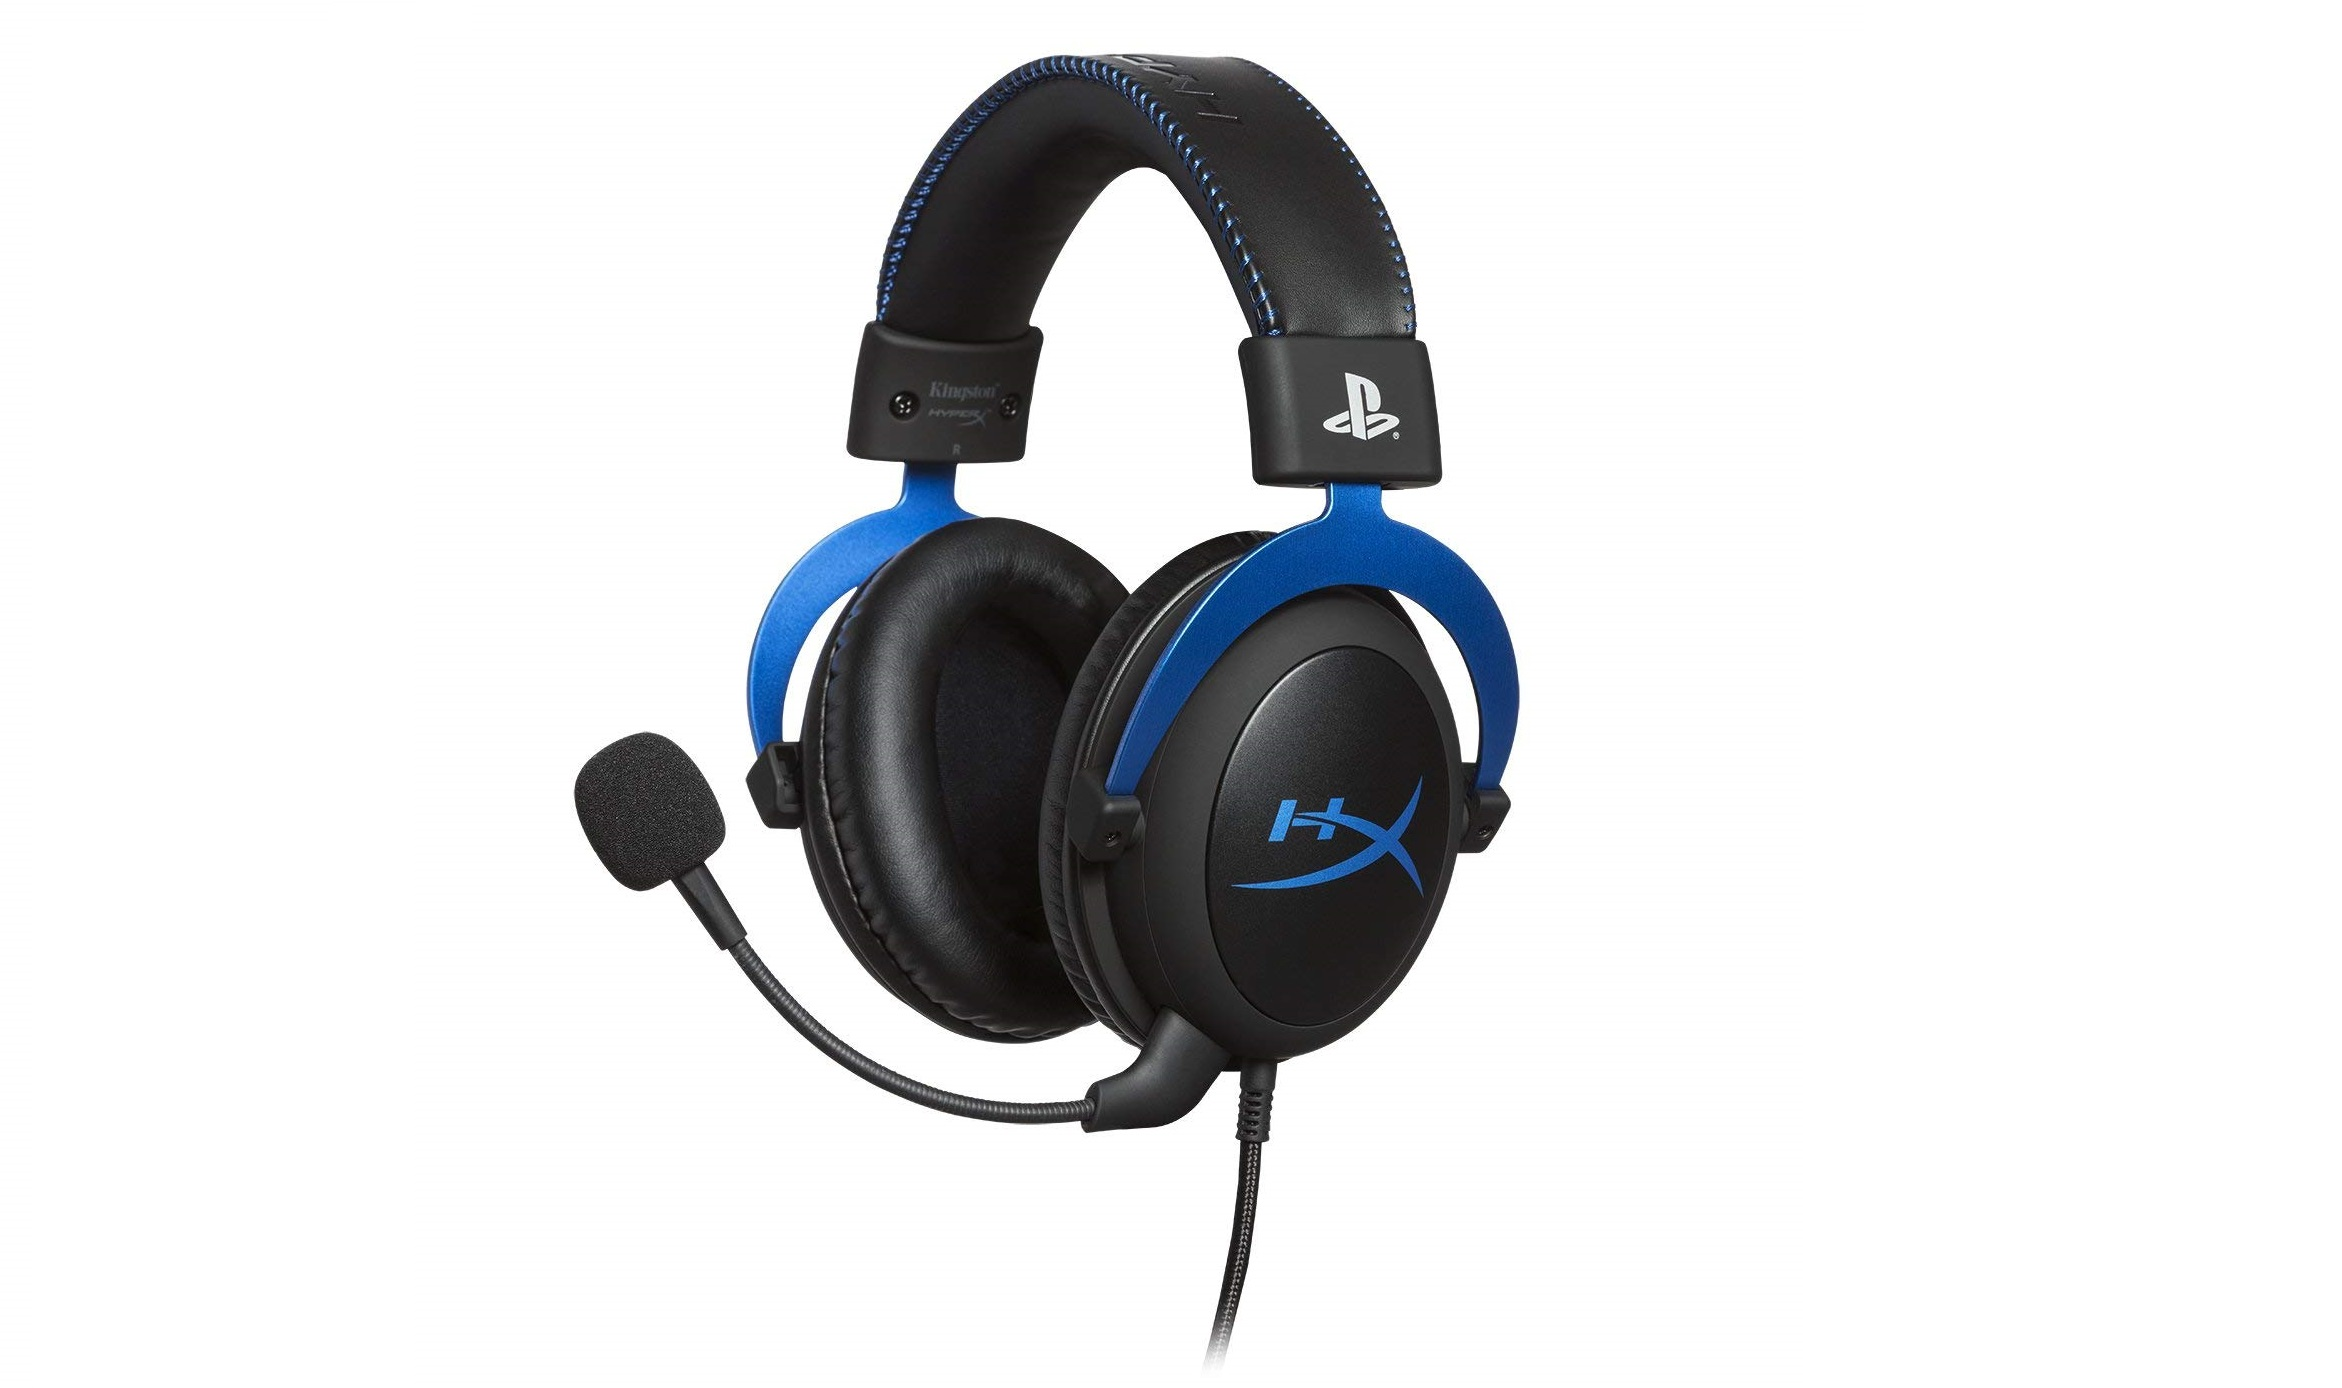 Best gaming headset for PS4 and Xbox: The very best